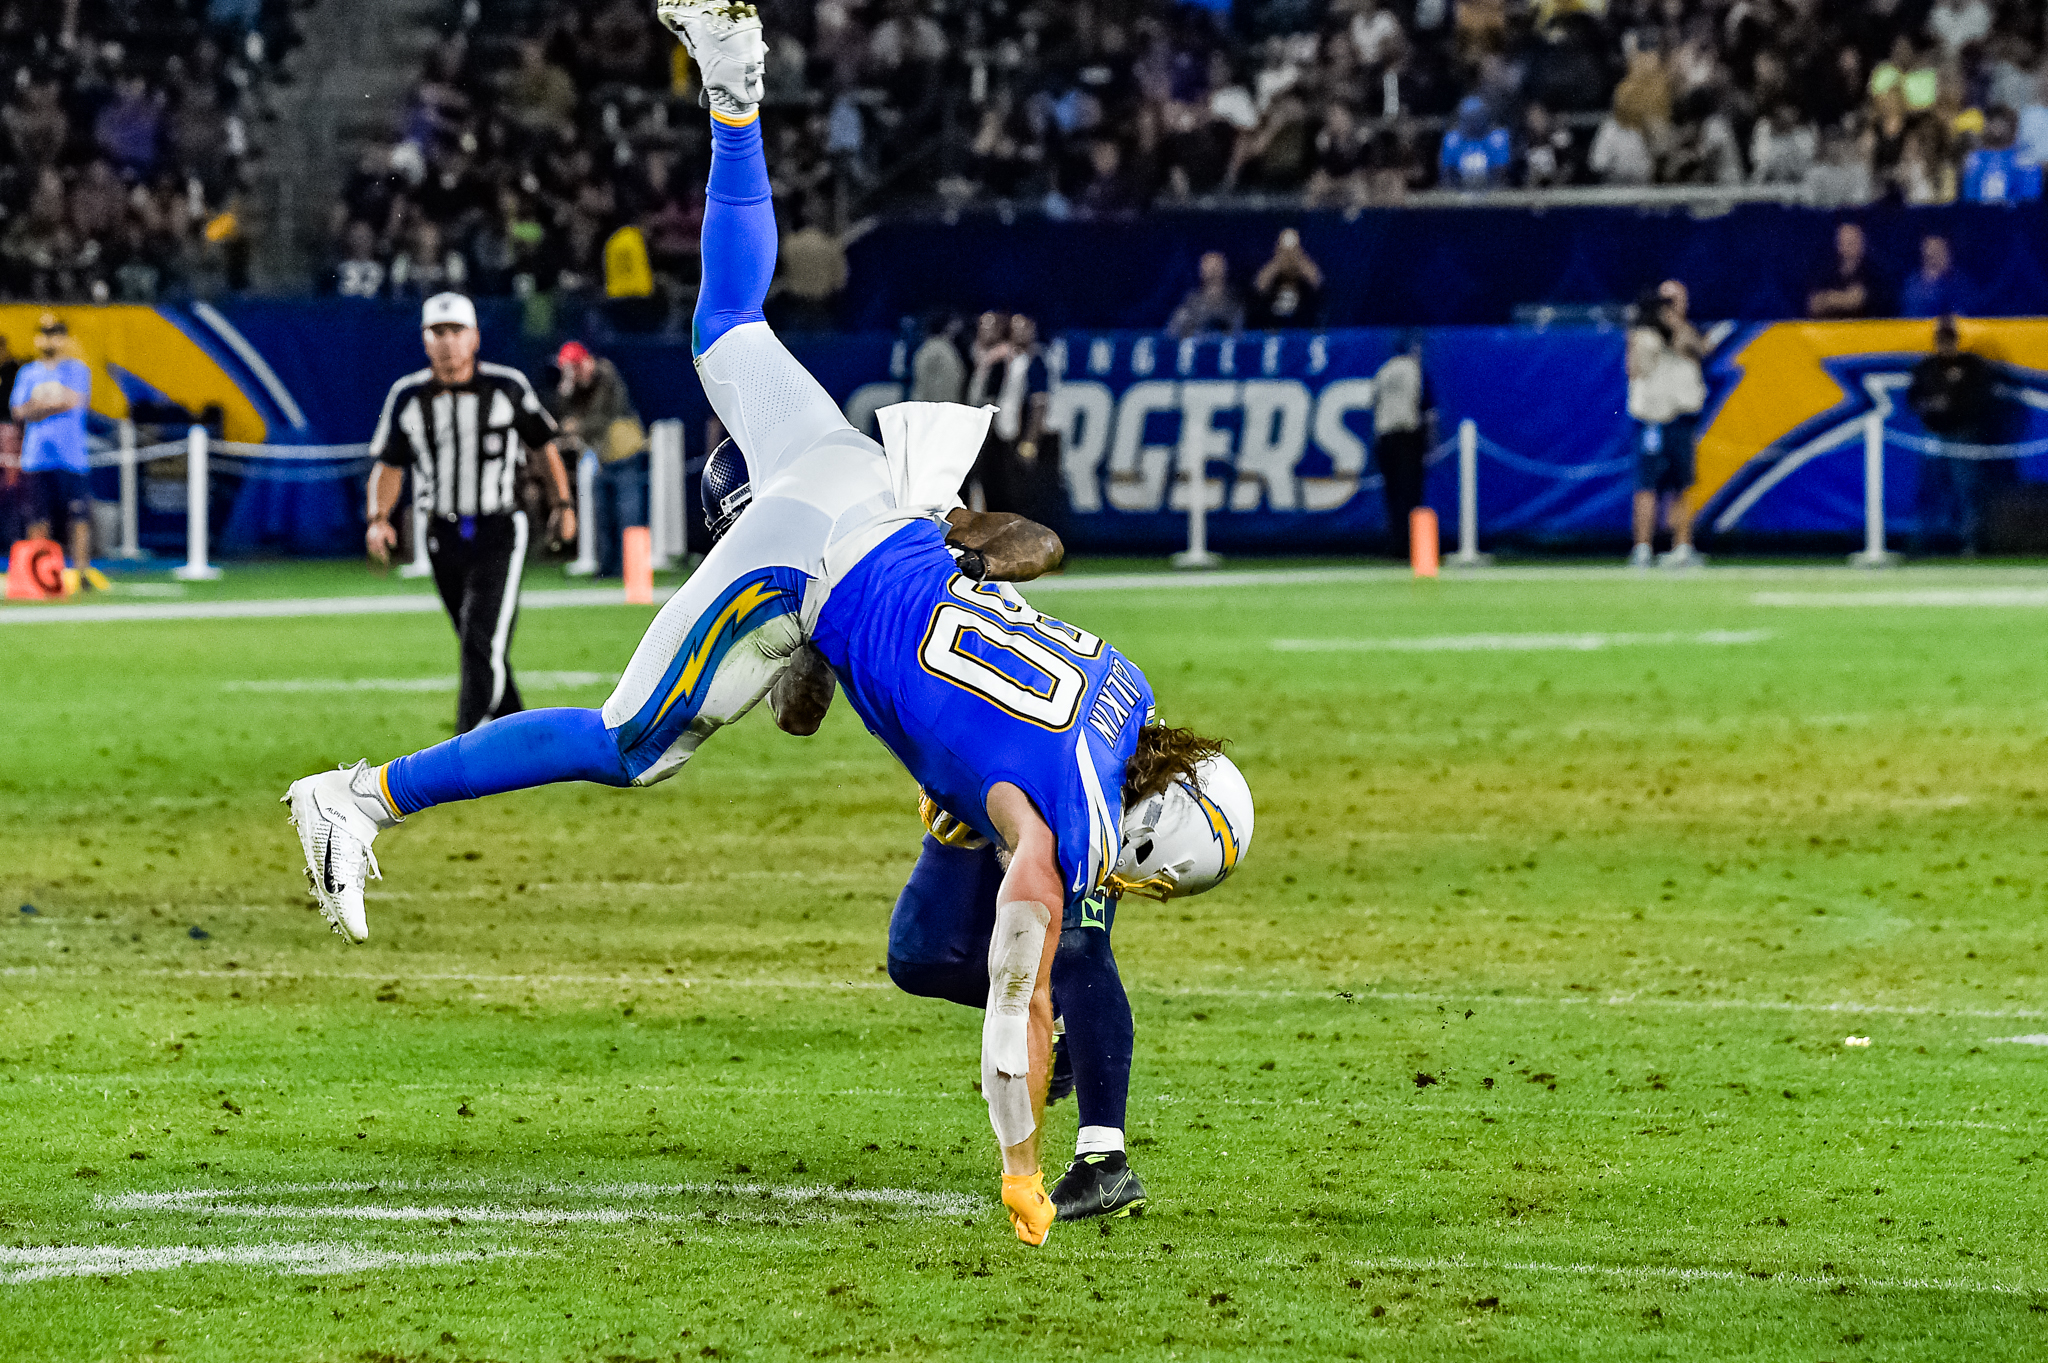 © Mark Hammond/News4usonline - Aug. 24, 2019 - Seahawks vs. Chargers - Chargers tight end Sean Culkin (80) make the spectacular catch.